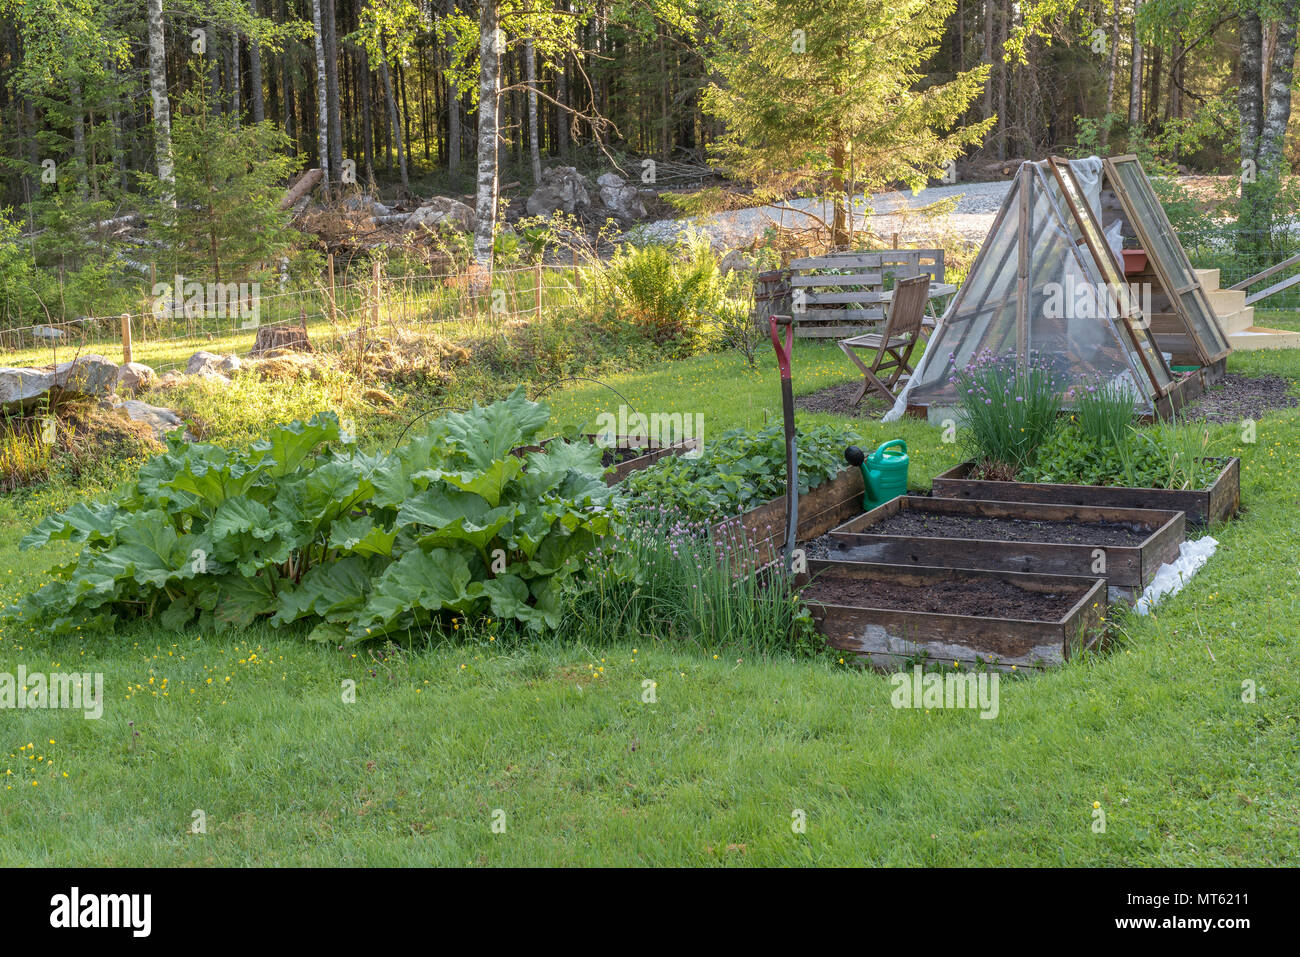 overlooking a green garden and a greenhouse in a swedish garden - Stock Image